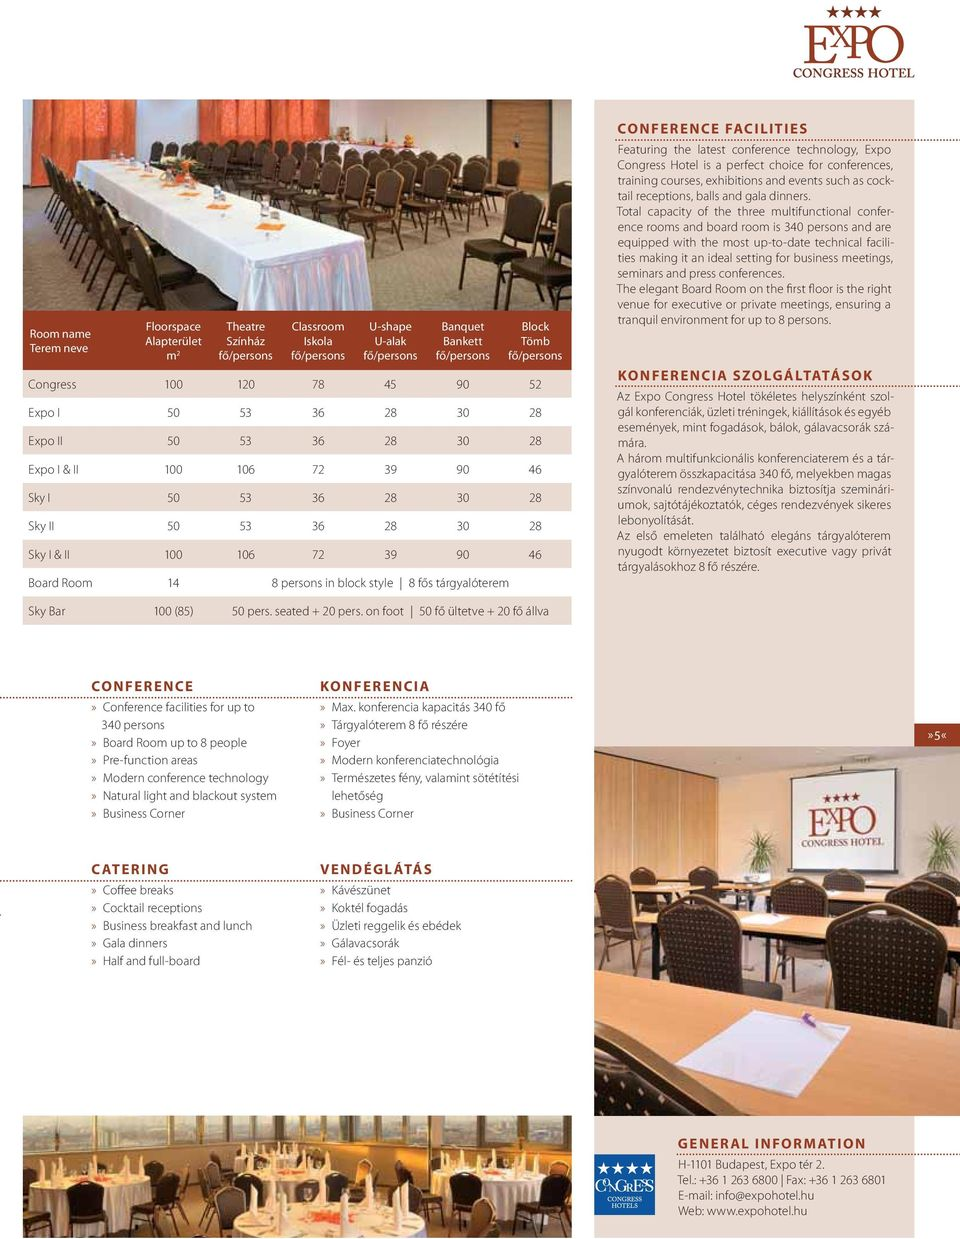 block style 8 fős tárgyalóterem CONFERENCE FACILITIES Featuring the latest conference technology, Expo Congress Hotel is a perfect choice for conferences, training courses, exhibitions and events